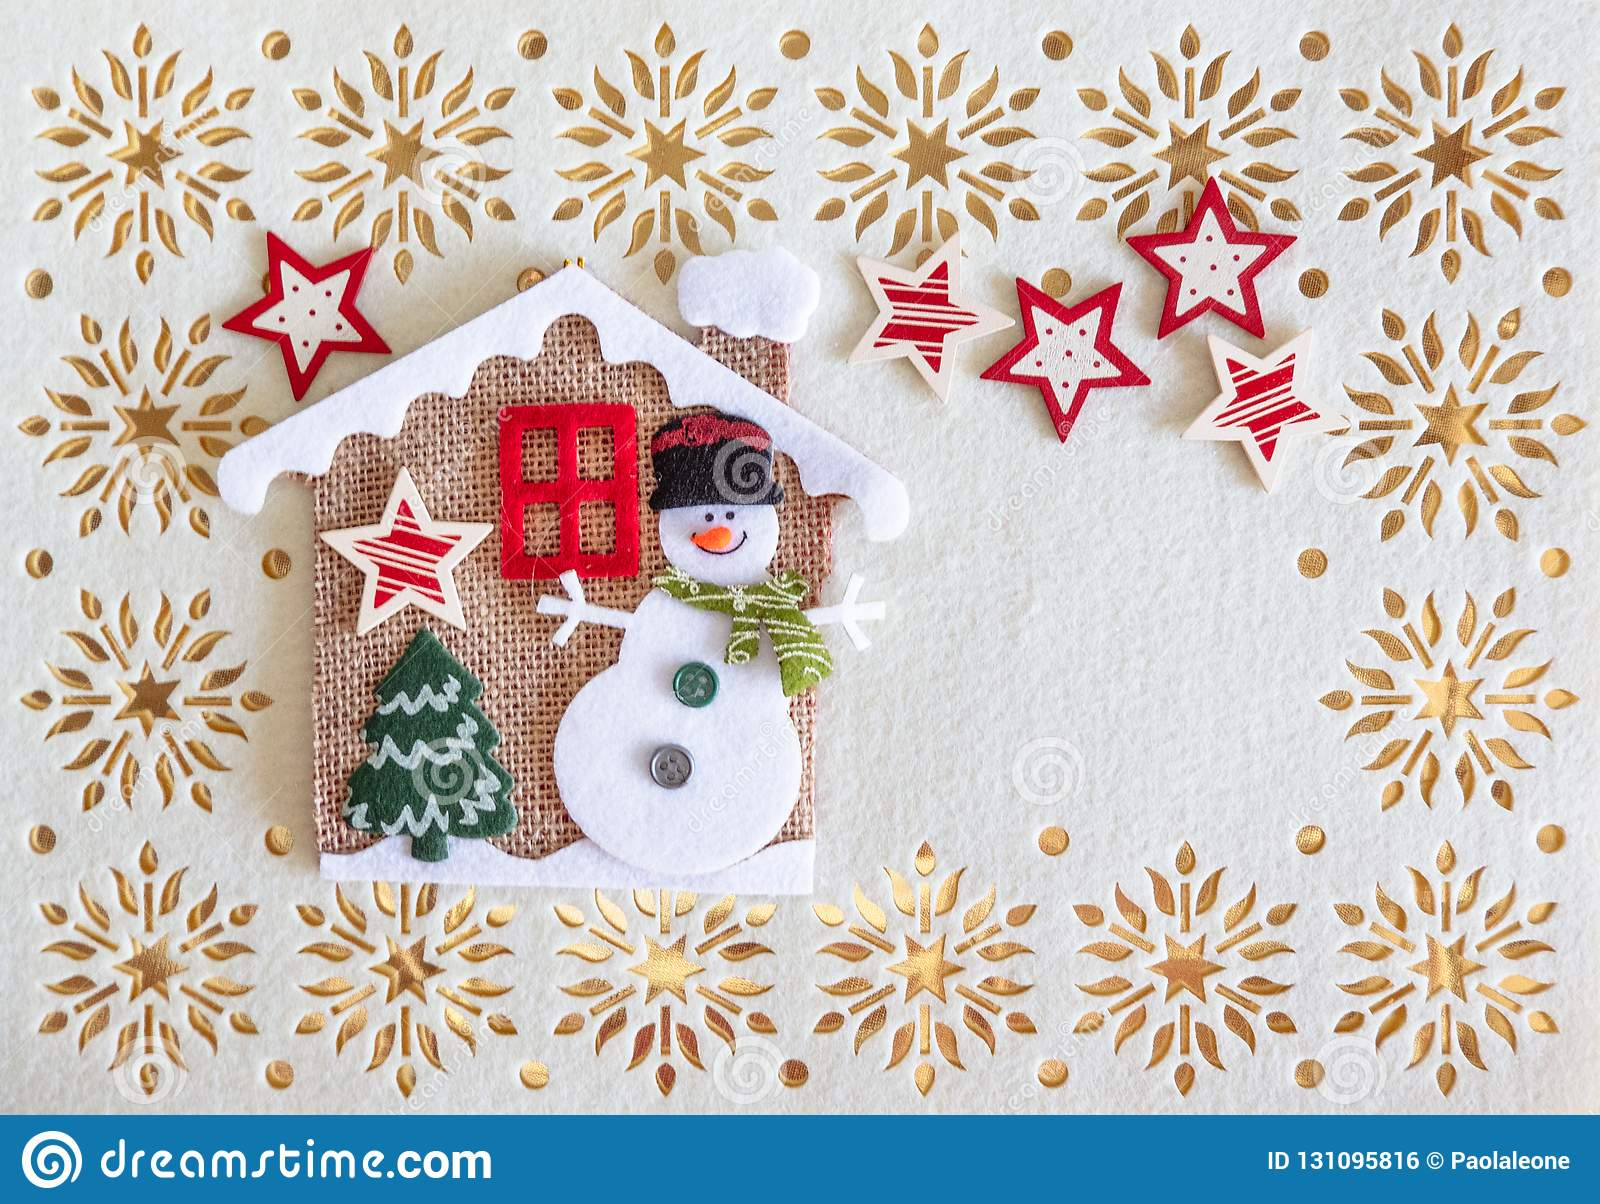 Christmas Card with Copy Space, Decoration made of Snowman with Tree and Stars in a little House